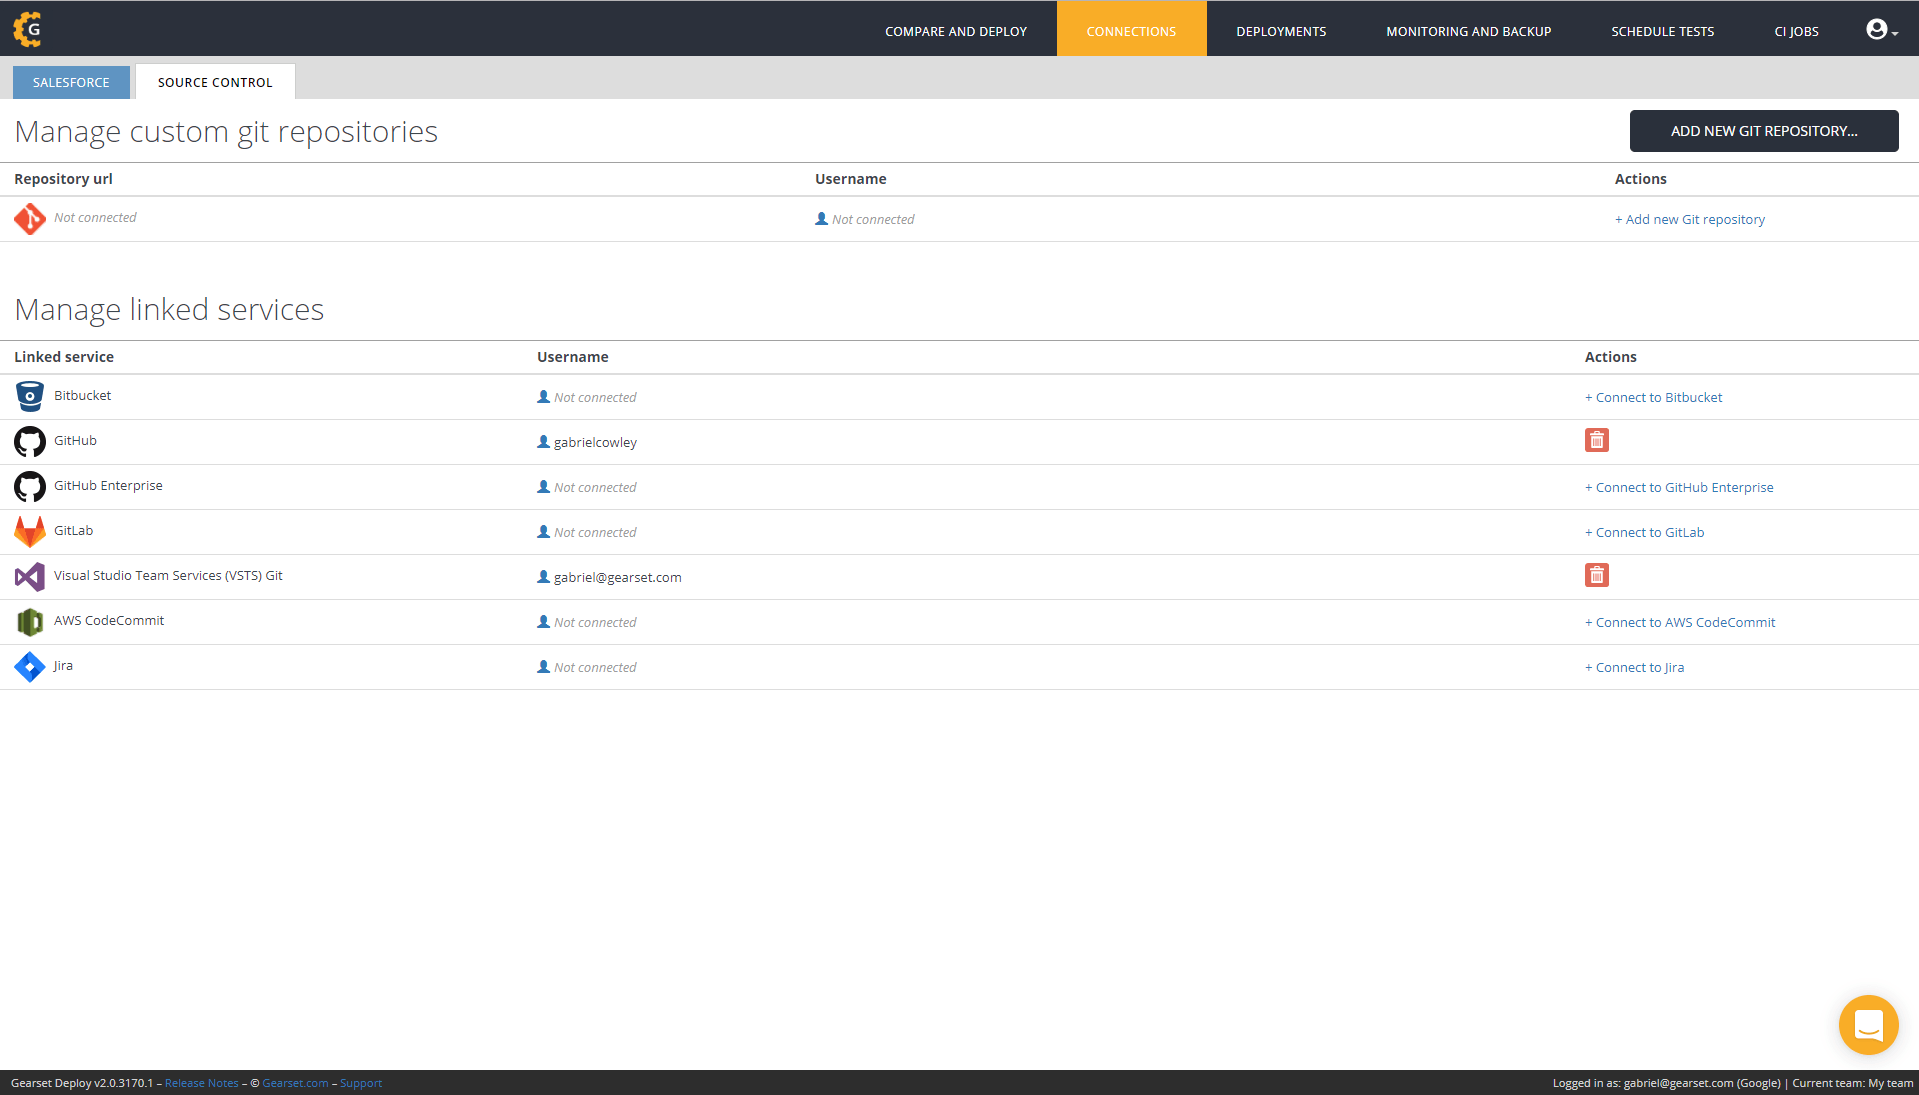 Navigate to the connections page and click connect to Jira